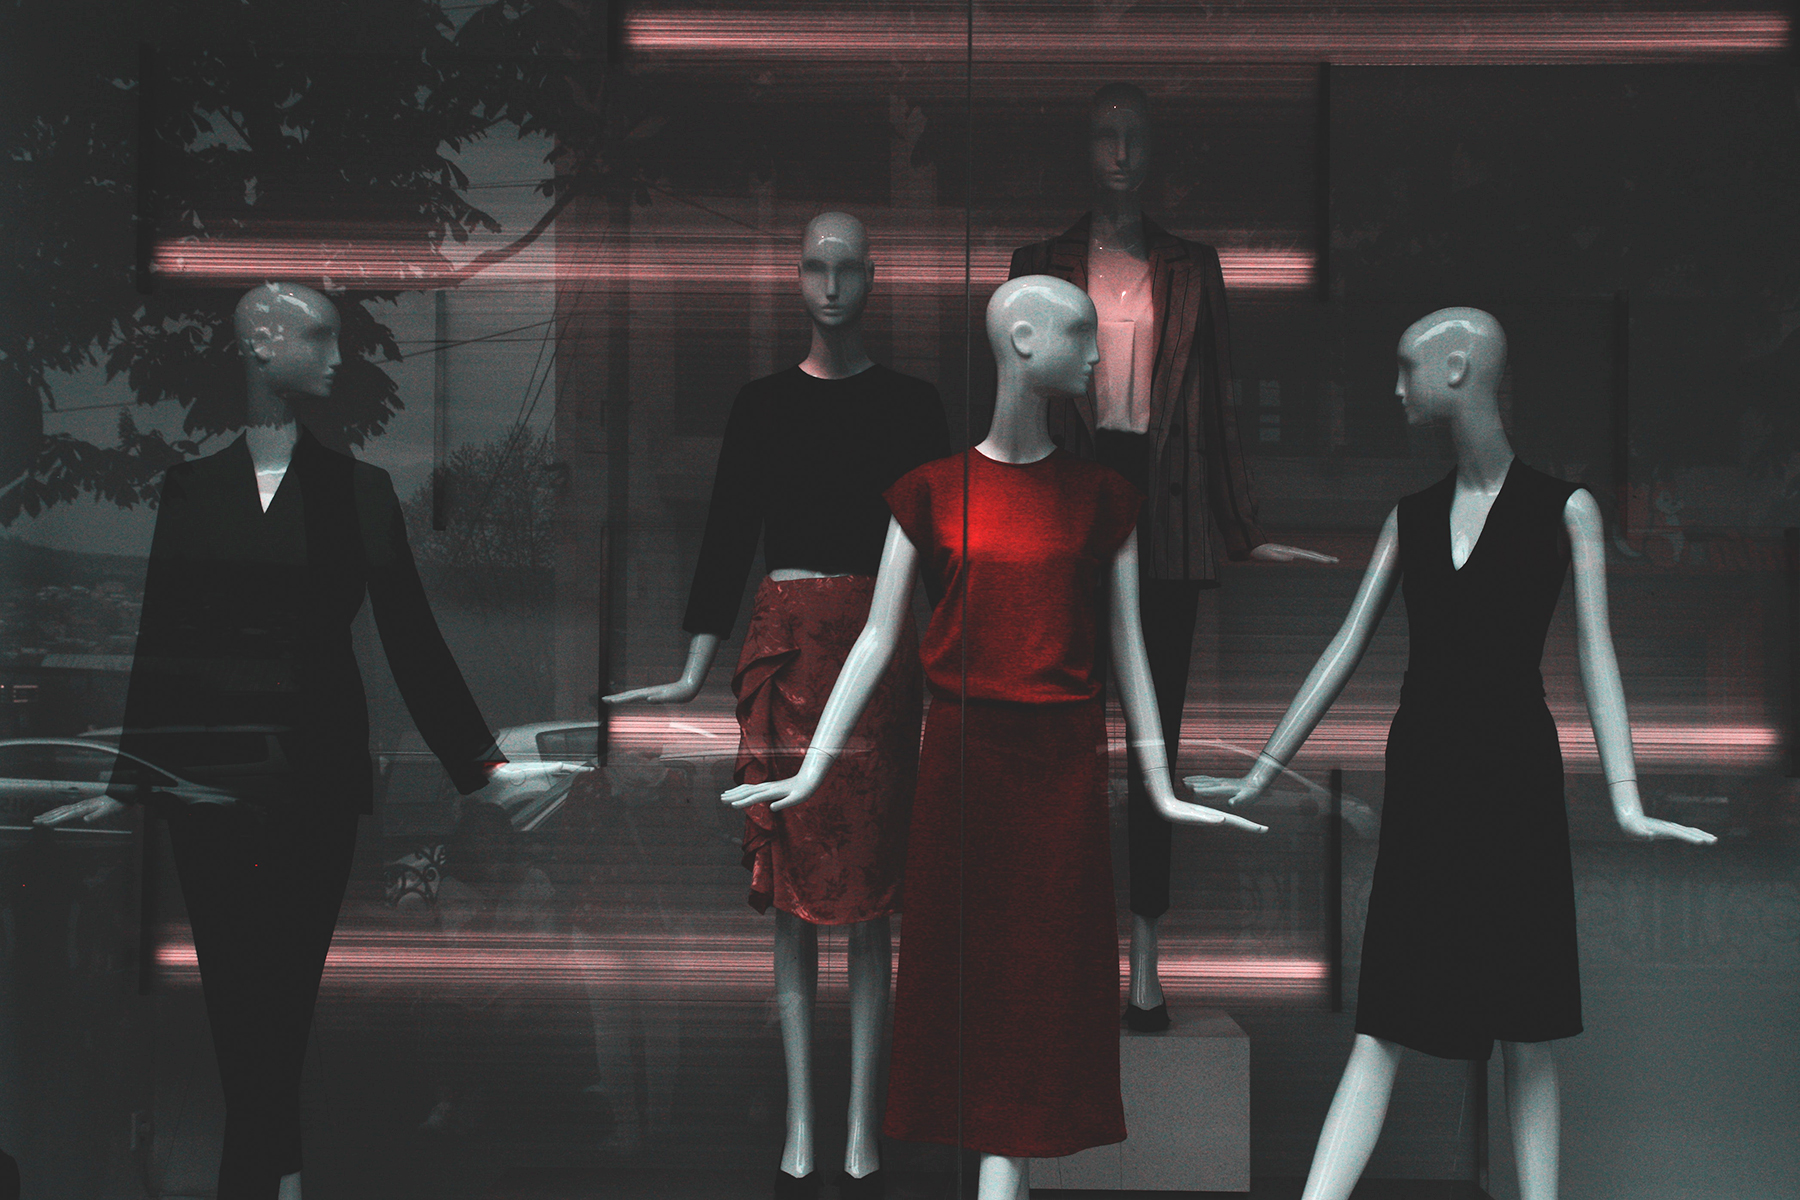 Mannequins doing their best to incite consumer desire; photo by George Shervashidze, from Pexels